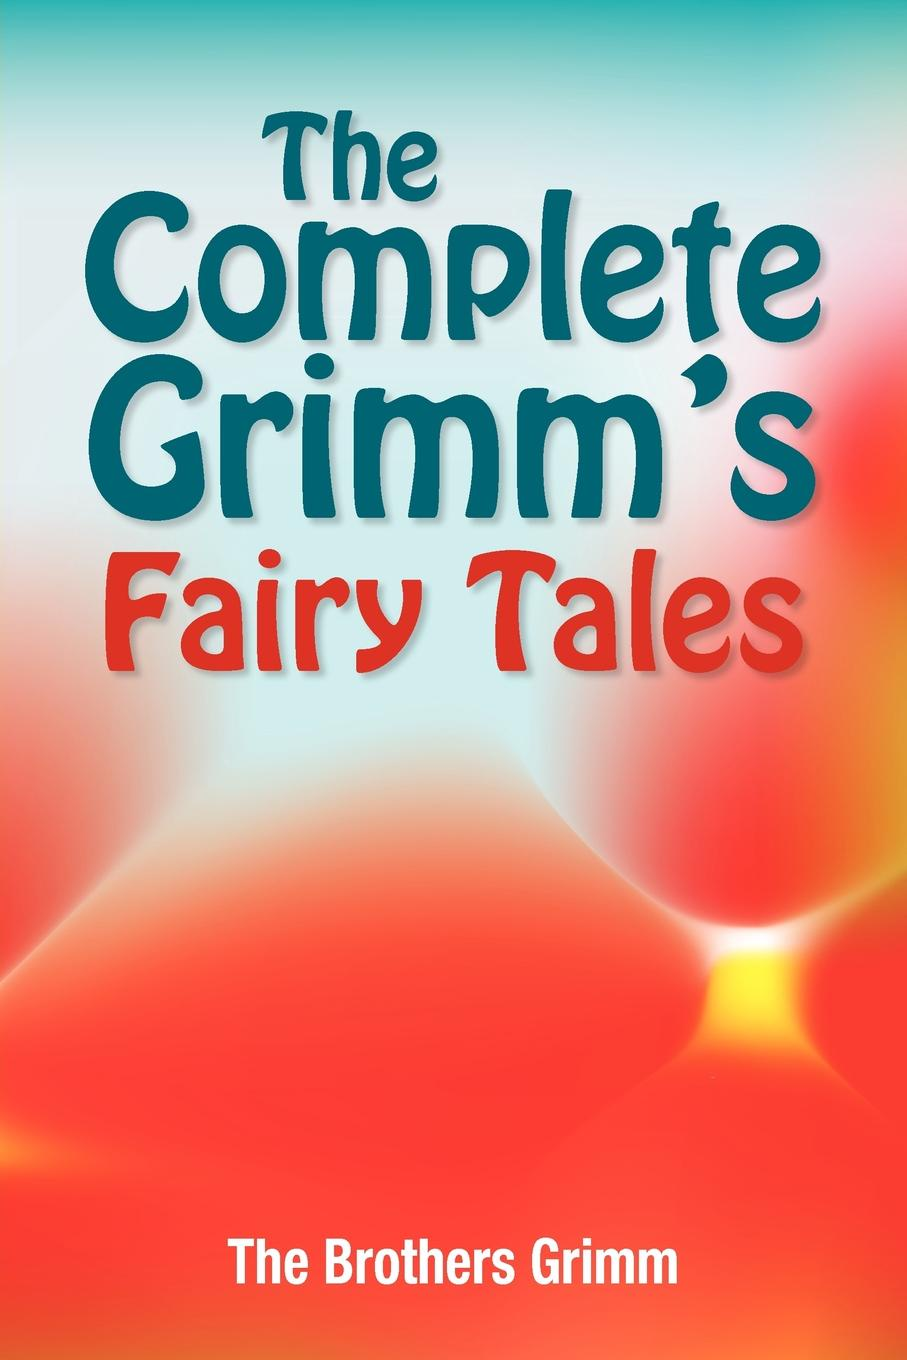 The Brothers Grimm, Jacob Ludwig Carl Grimm, Wilhelm Grimm The Complete Grimm's Fairy Tales the brothers grimm sleeping beauty teacher s edition